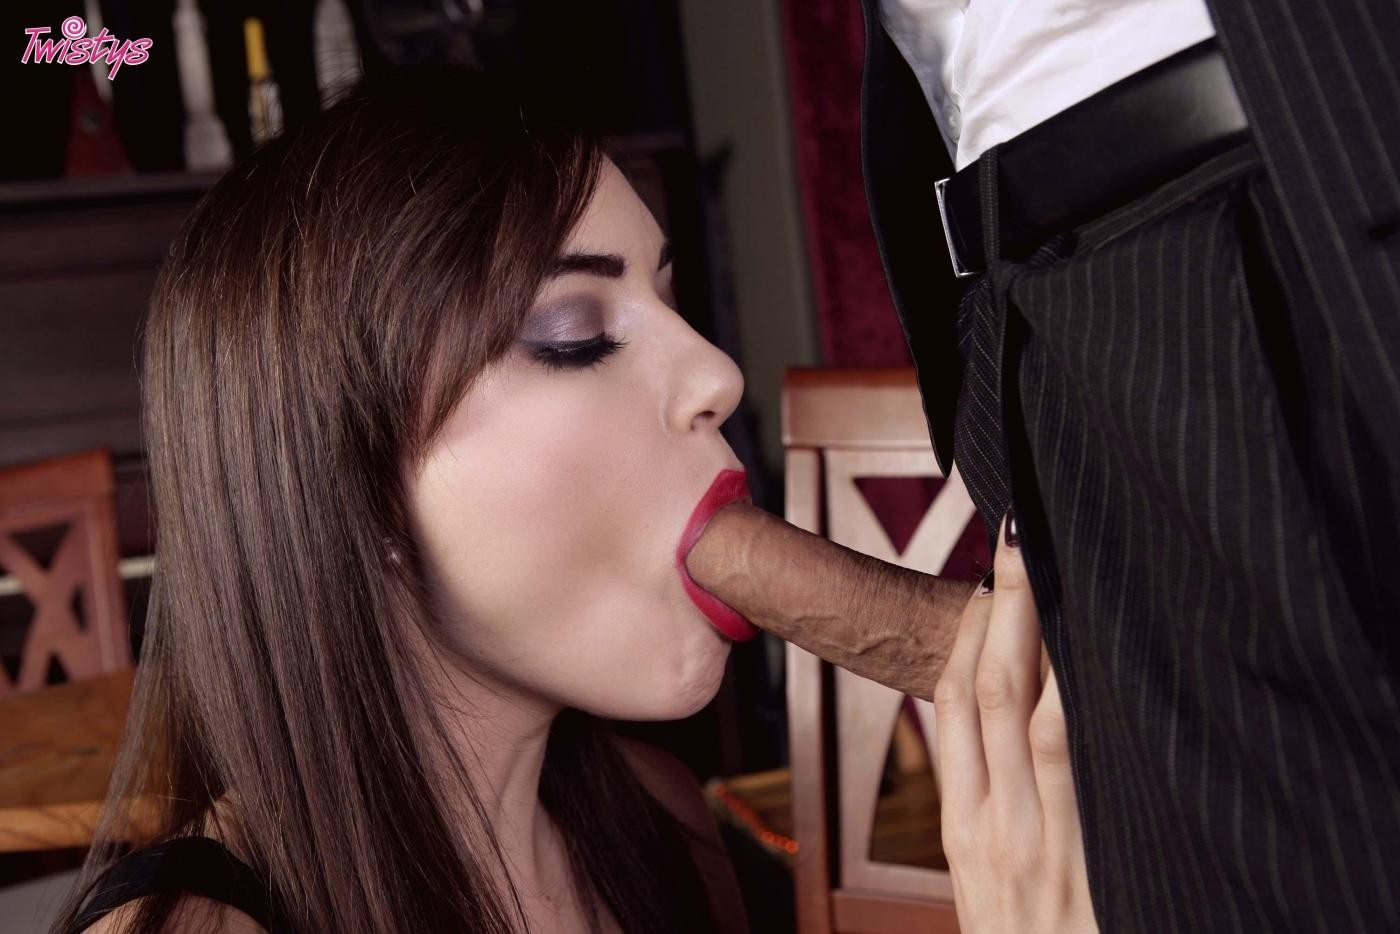 Thin sasha grey takes off her swarthy suit and benefits from dicked